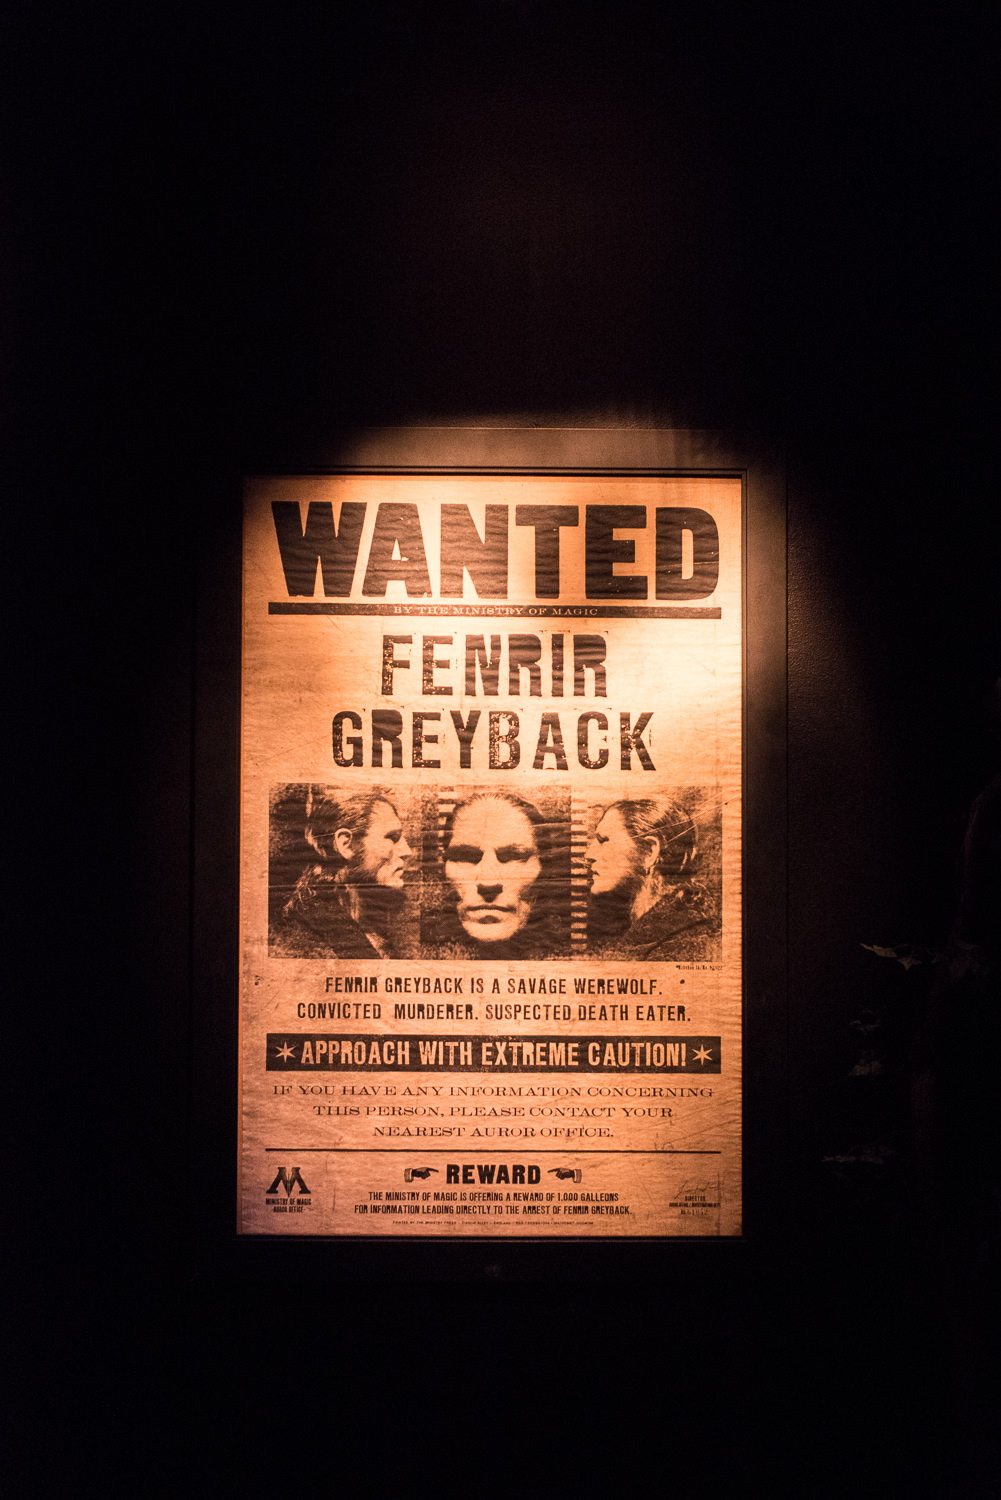 Blog Mode And The City - Exposition Harry Potter Paris - Fenrir Greyback